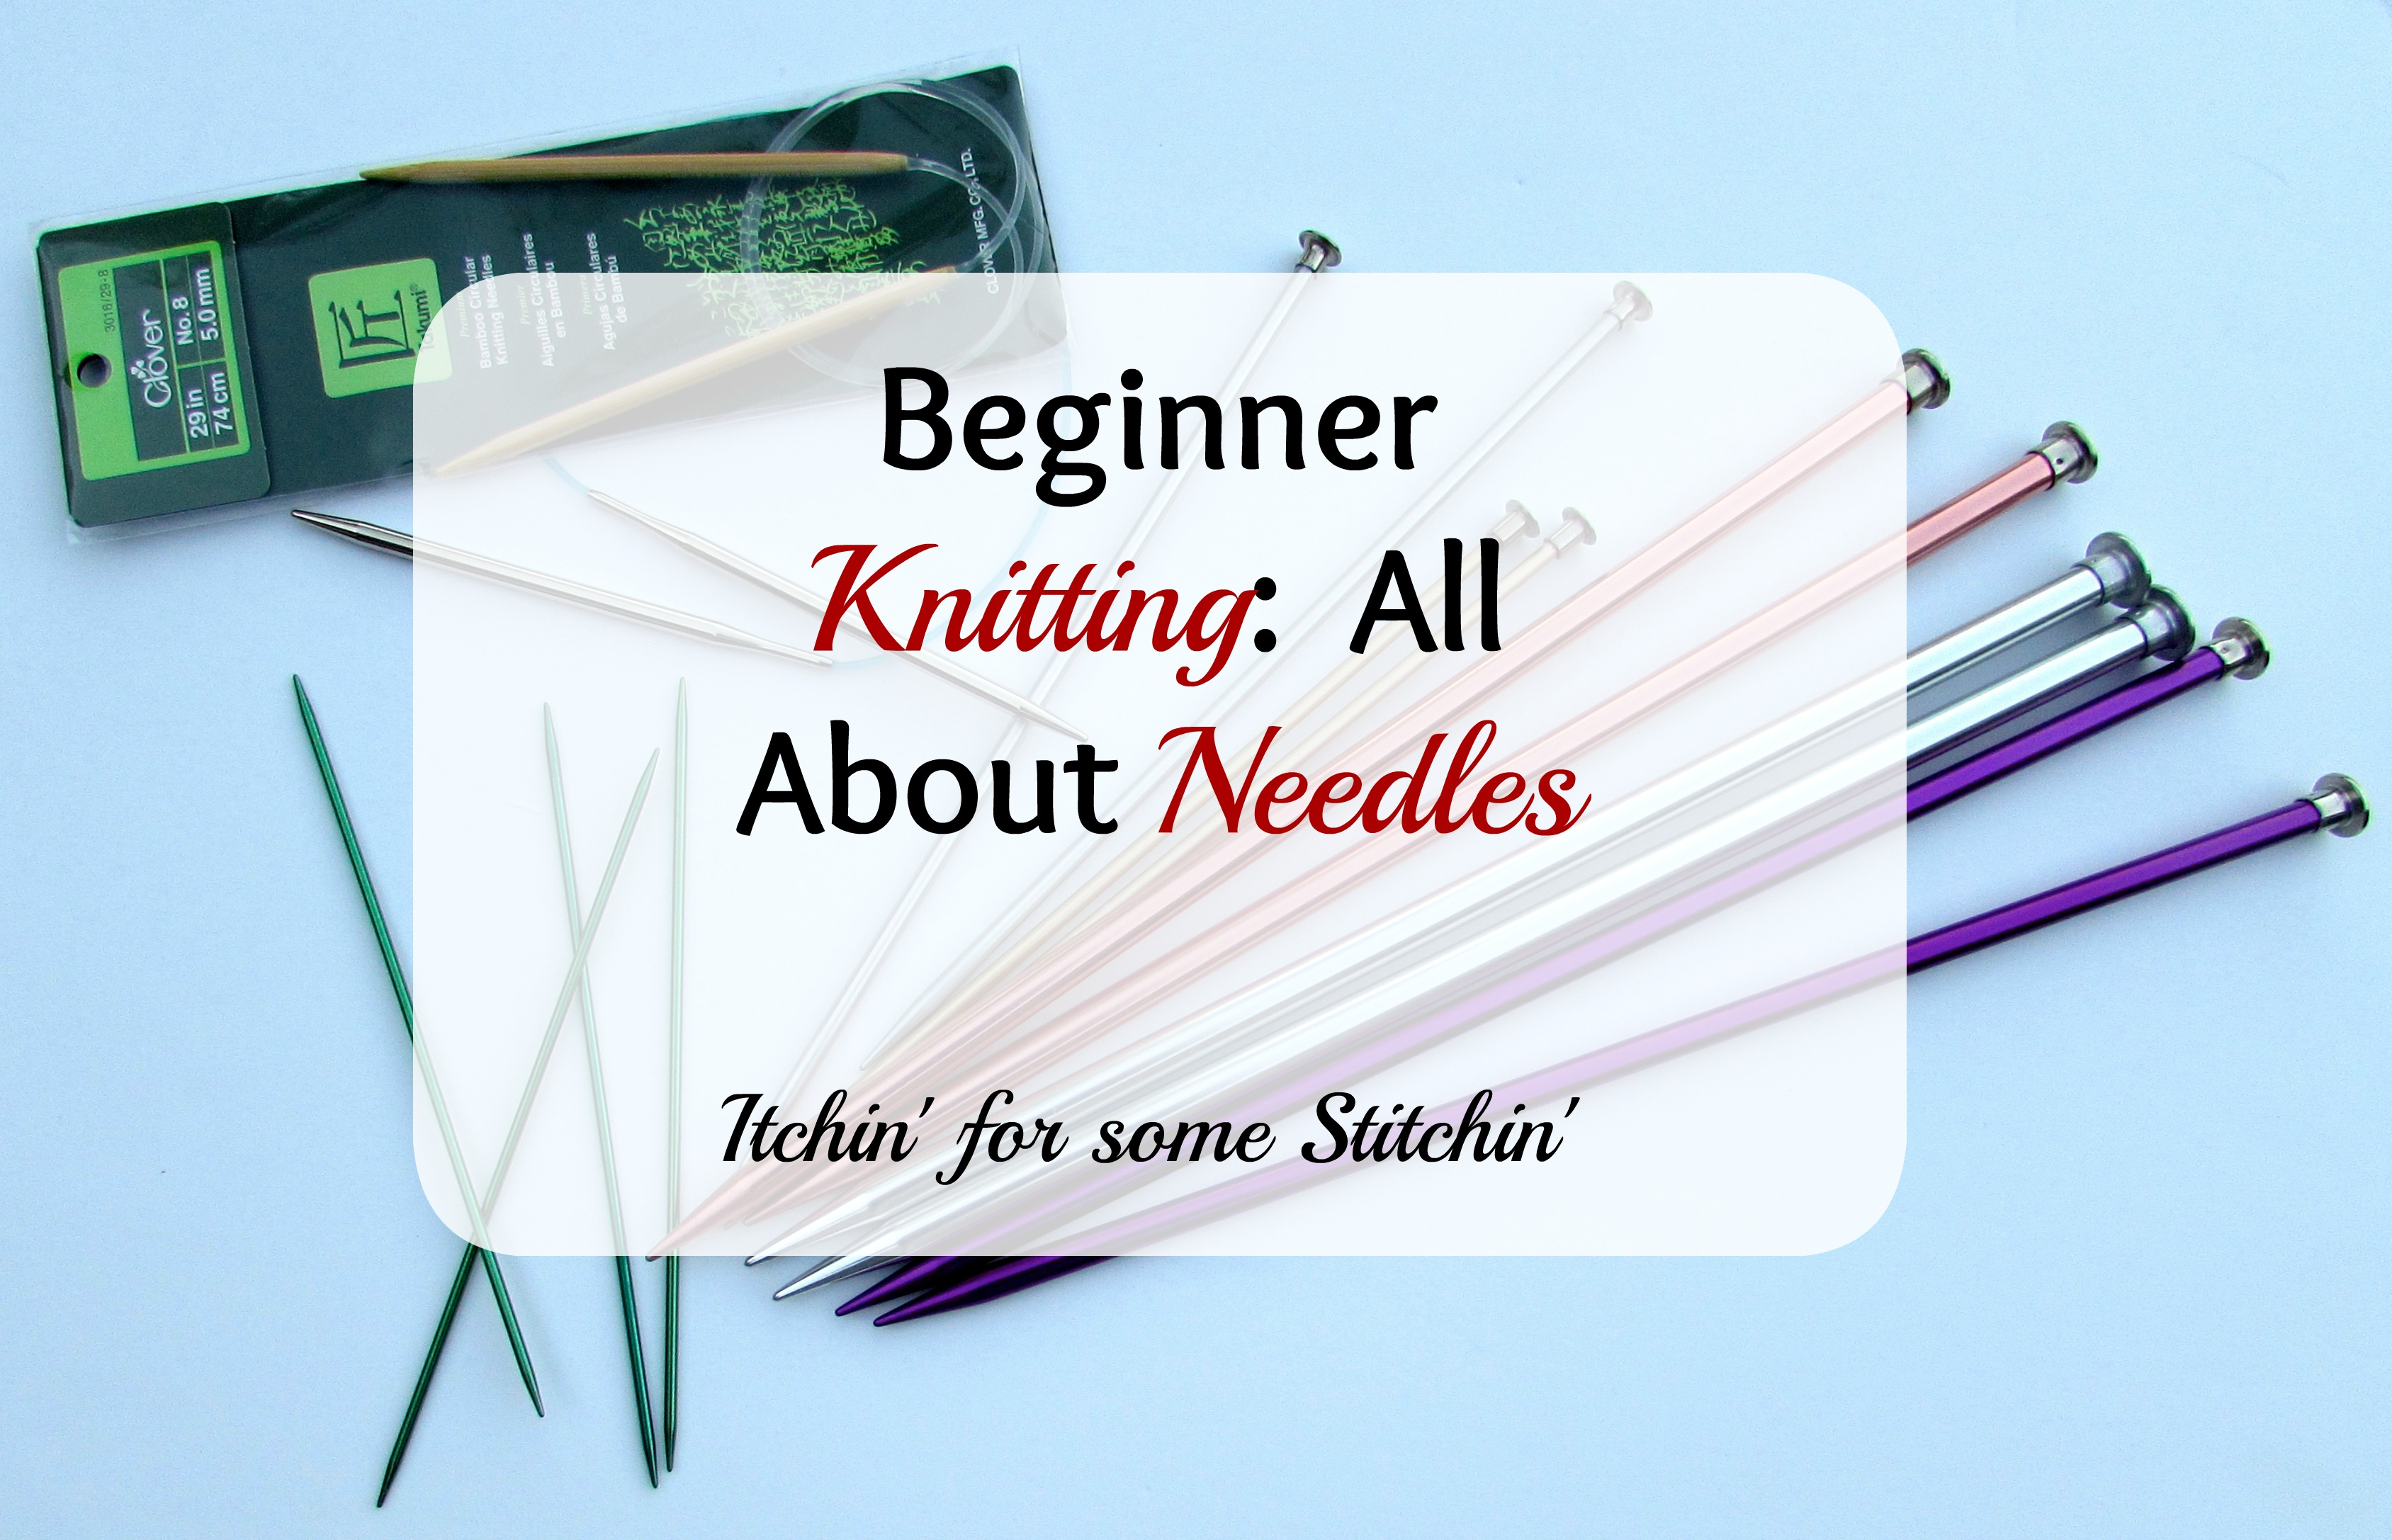 Everything you need to know about knitting needles itchin for everything you need to know about knitting needles itchin for some stitchin geenschuldenfo Choice Image